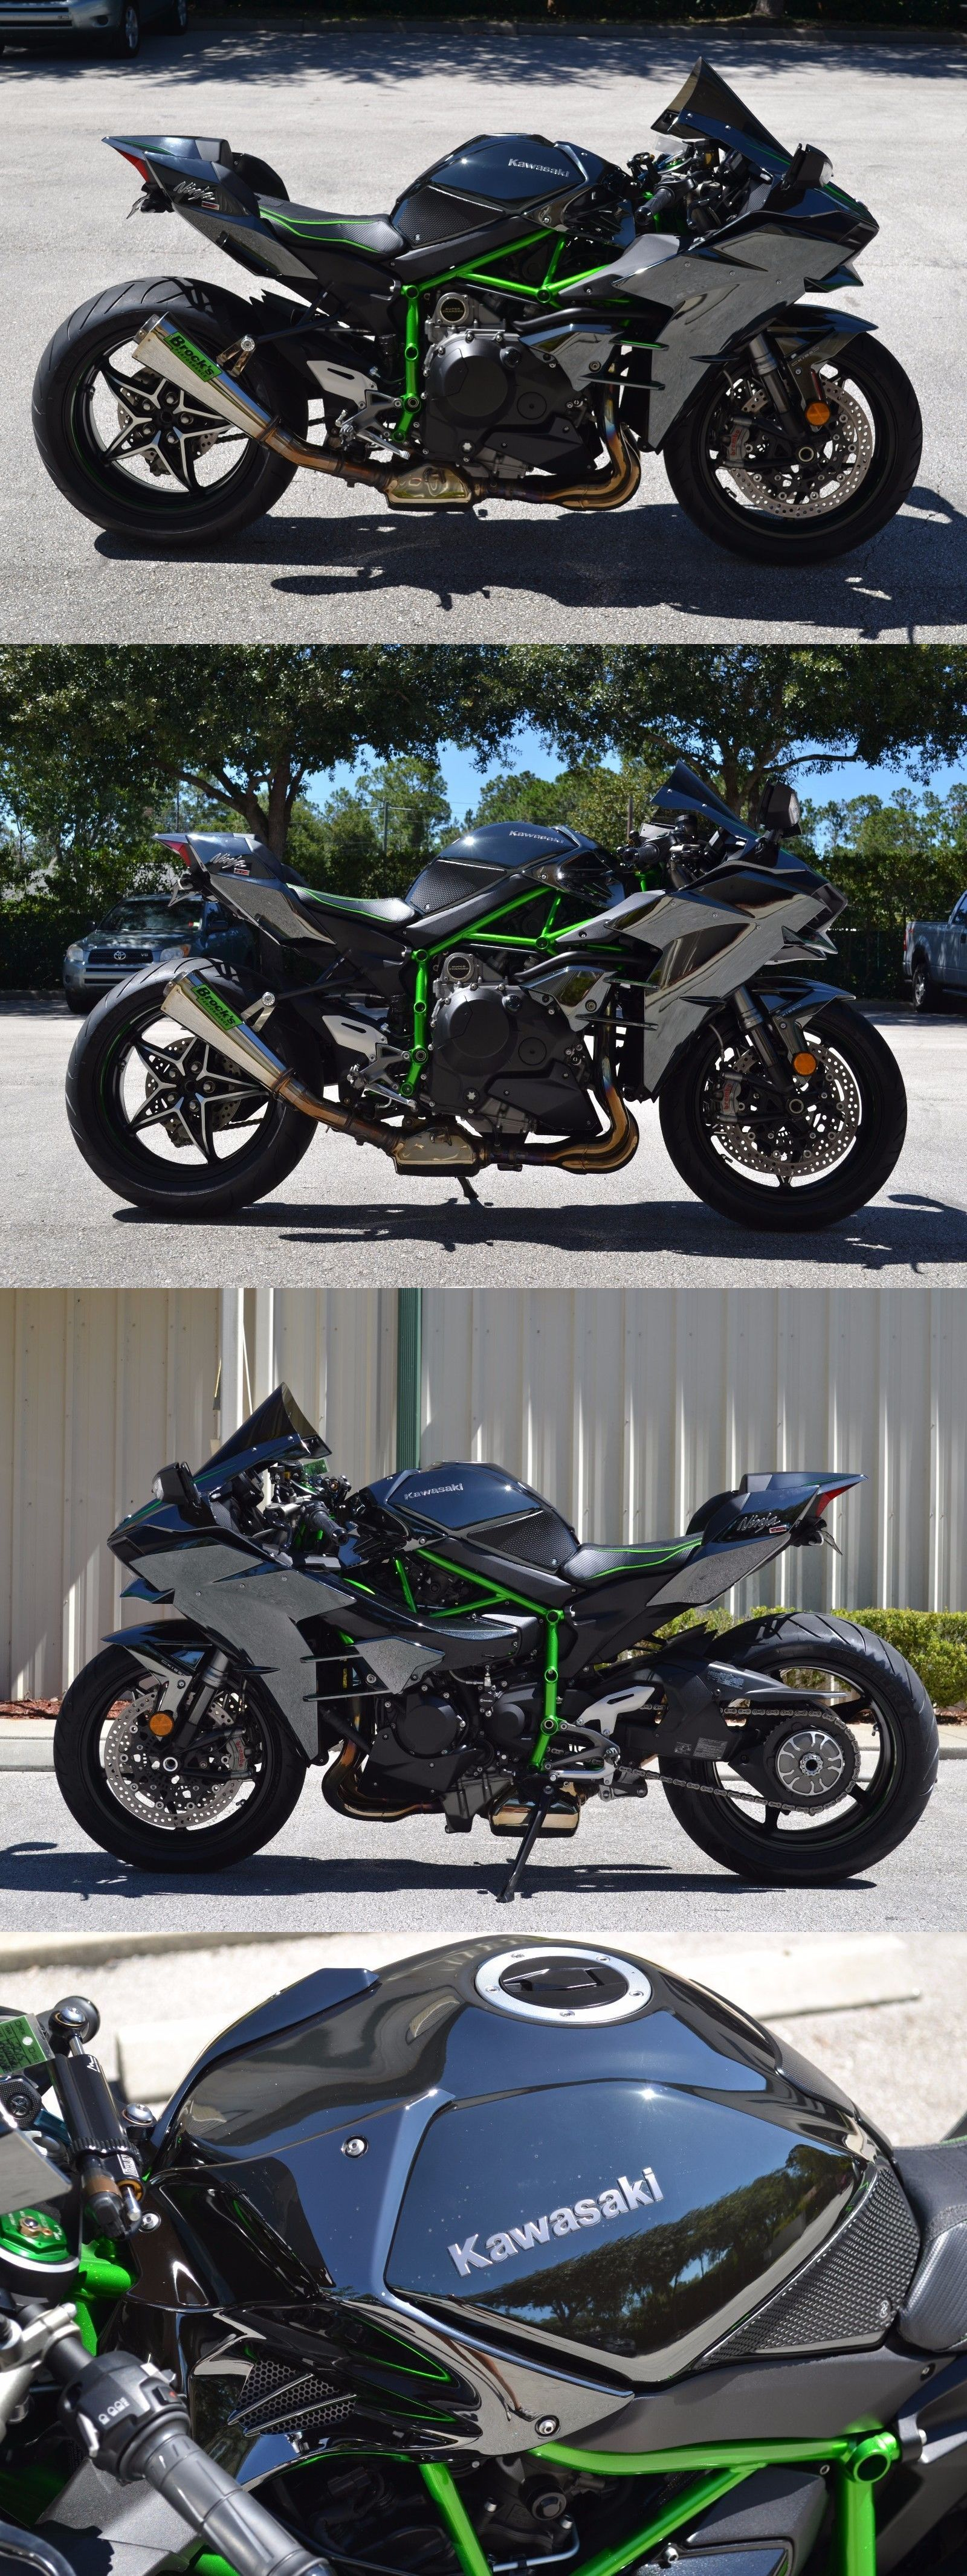 Motorcycles 2015 Kawasaki Ninja H2 1000Cc Supercharged Brock S Exhaust Pc5 Tuned